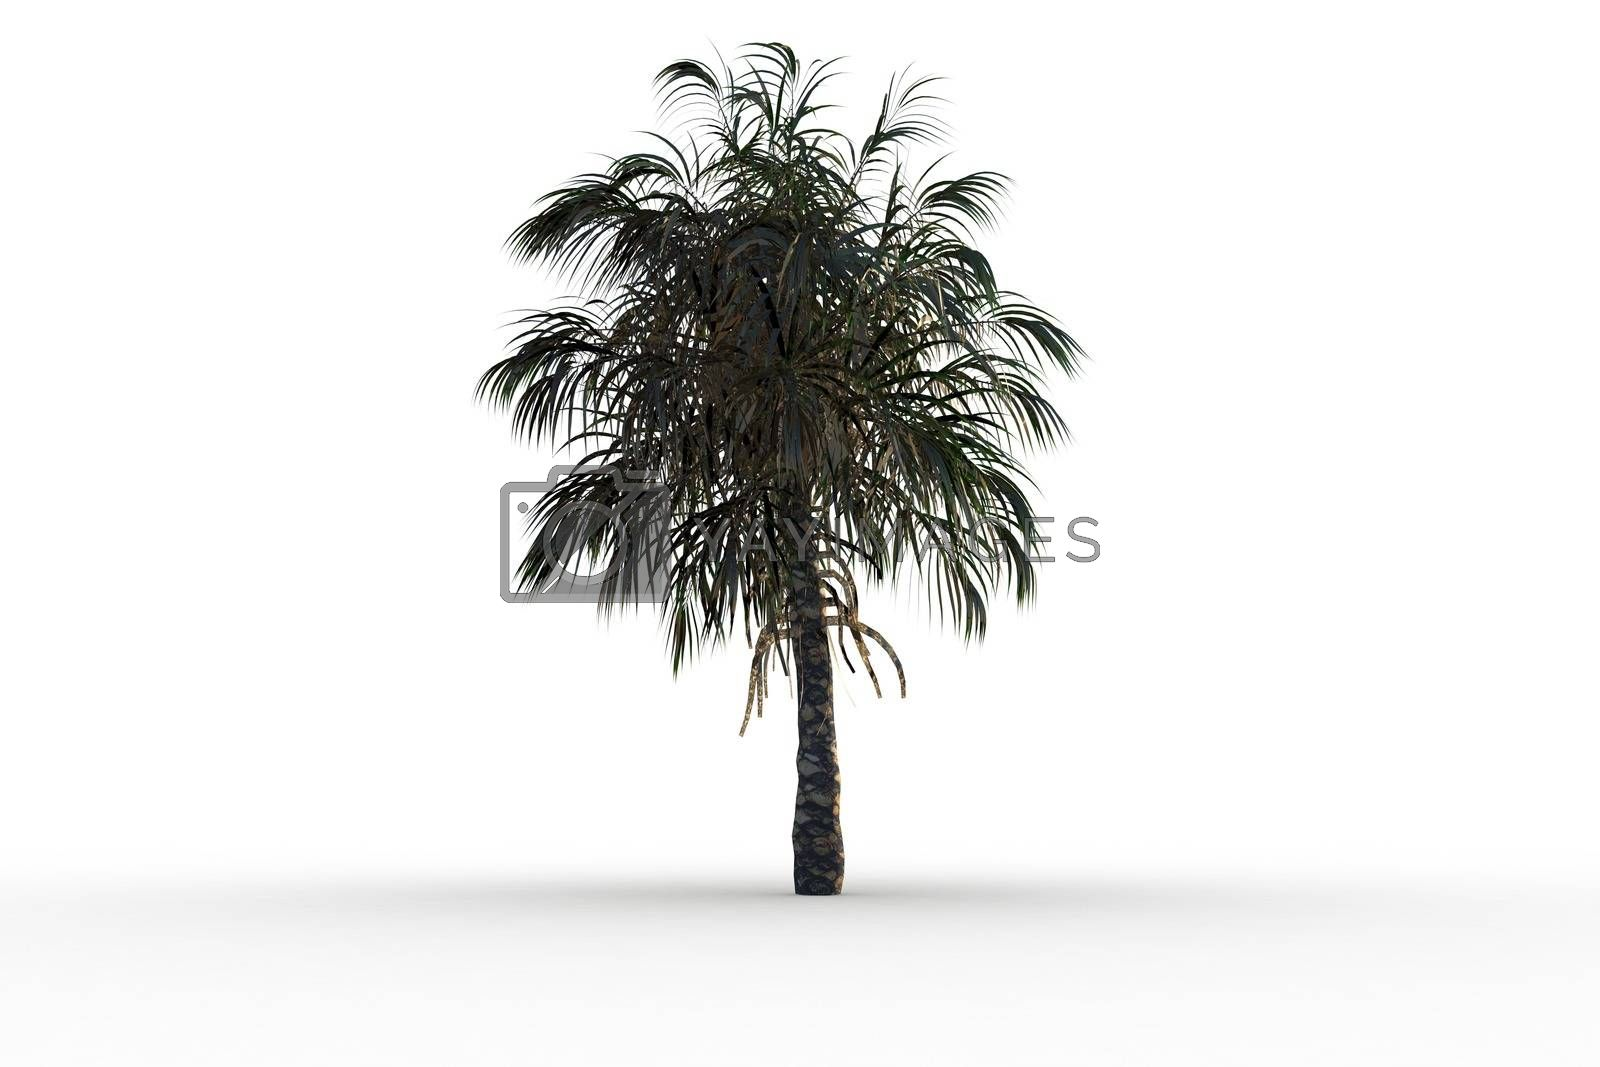 Royalty free image of Tropical palm tree with green foilage by Wavebreakmedia